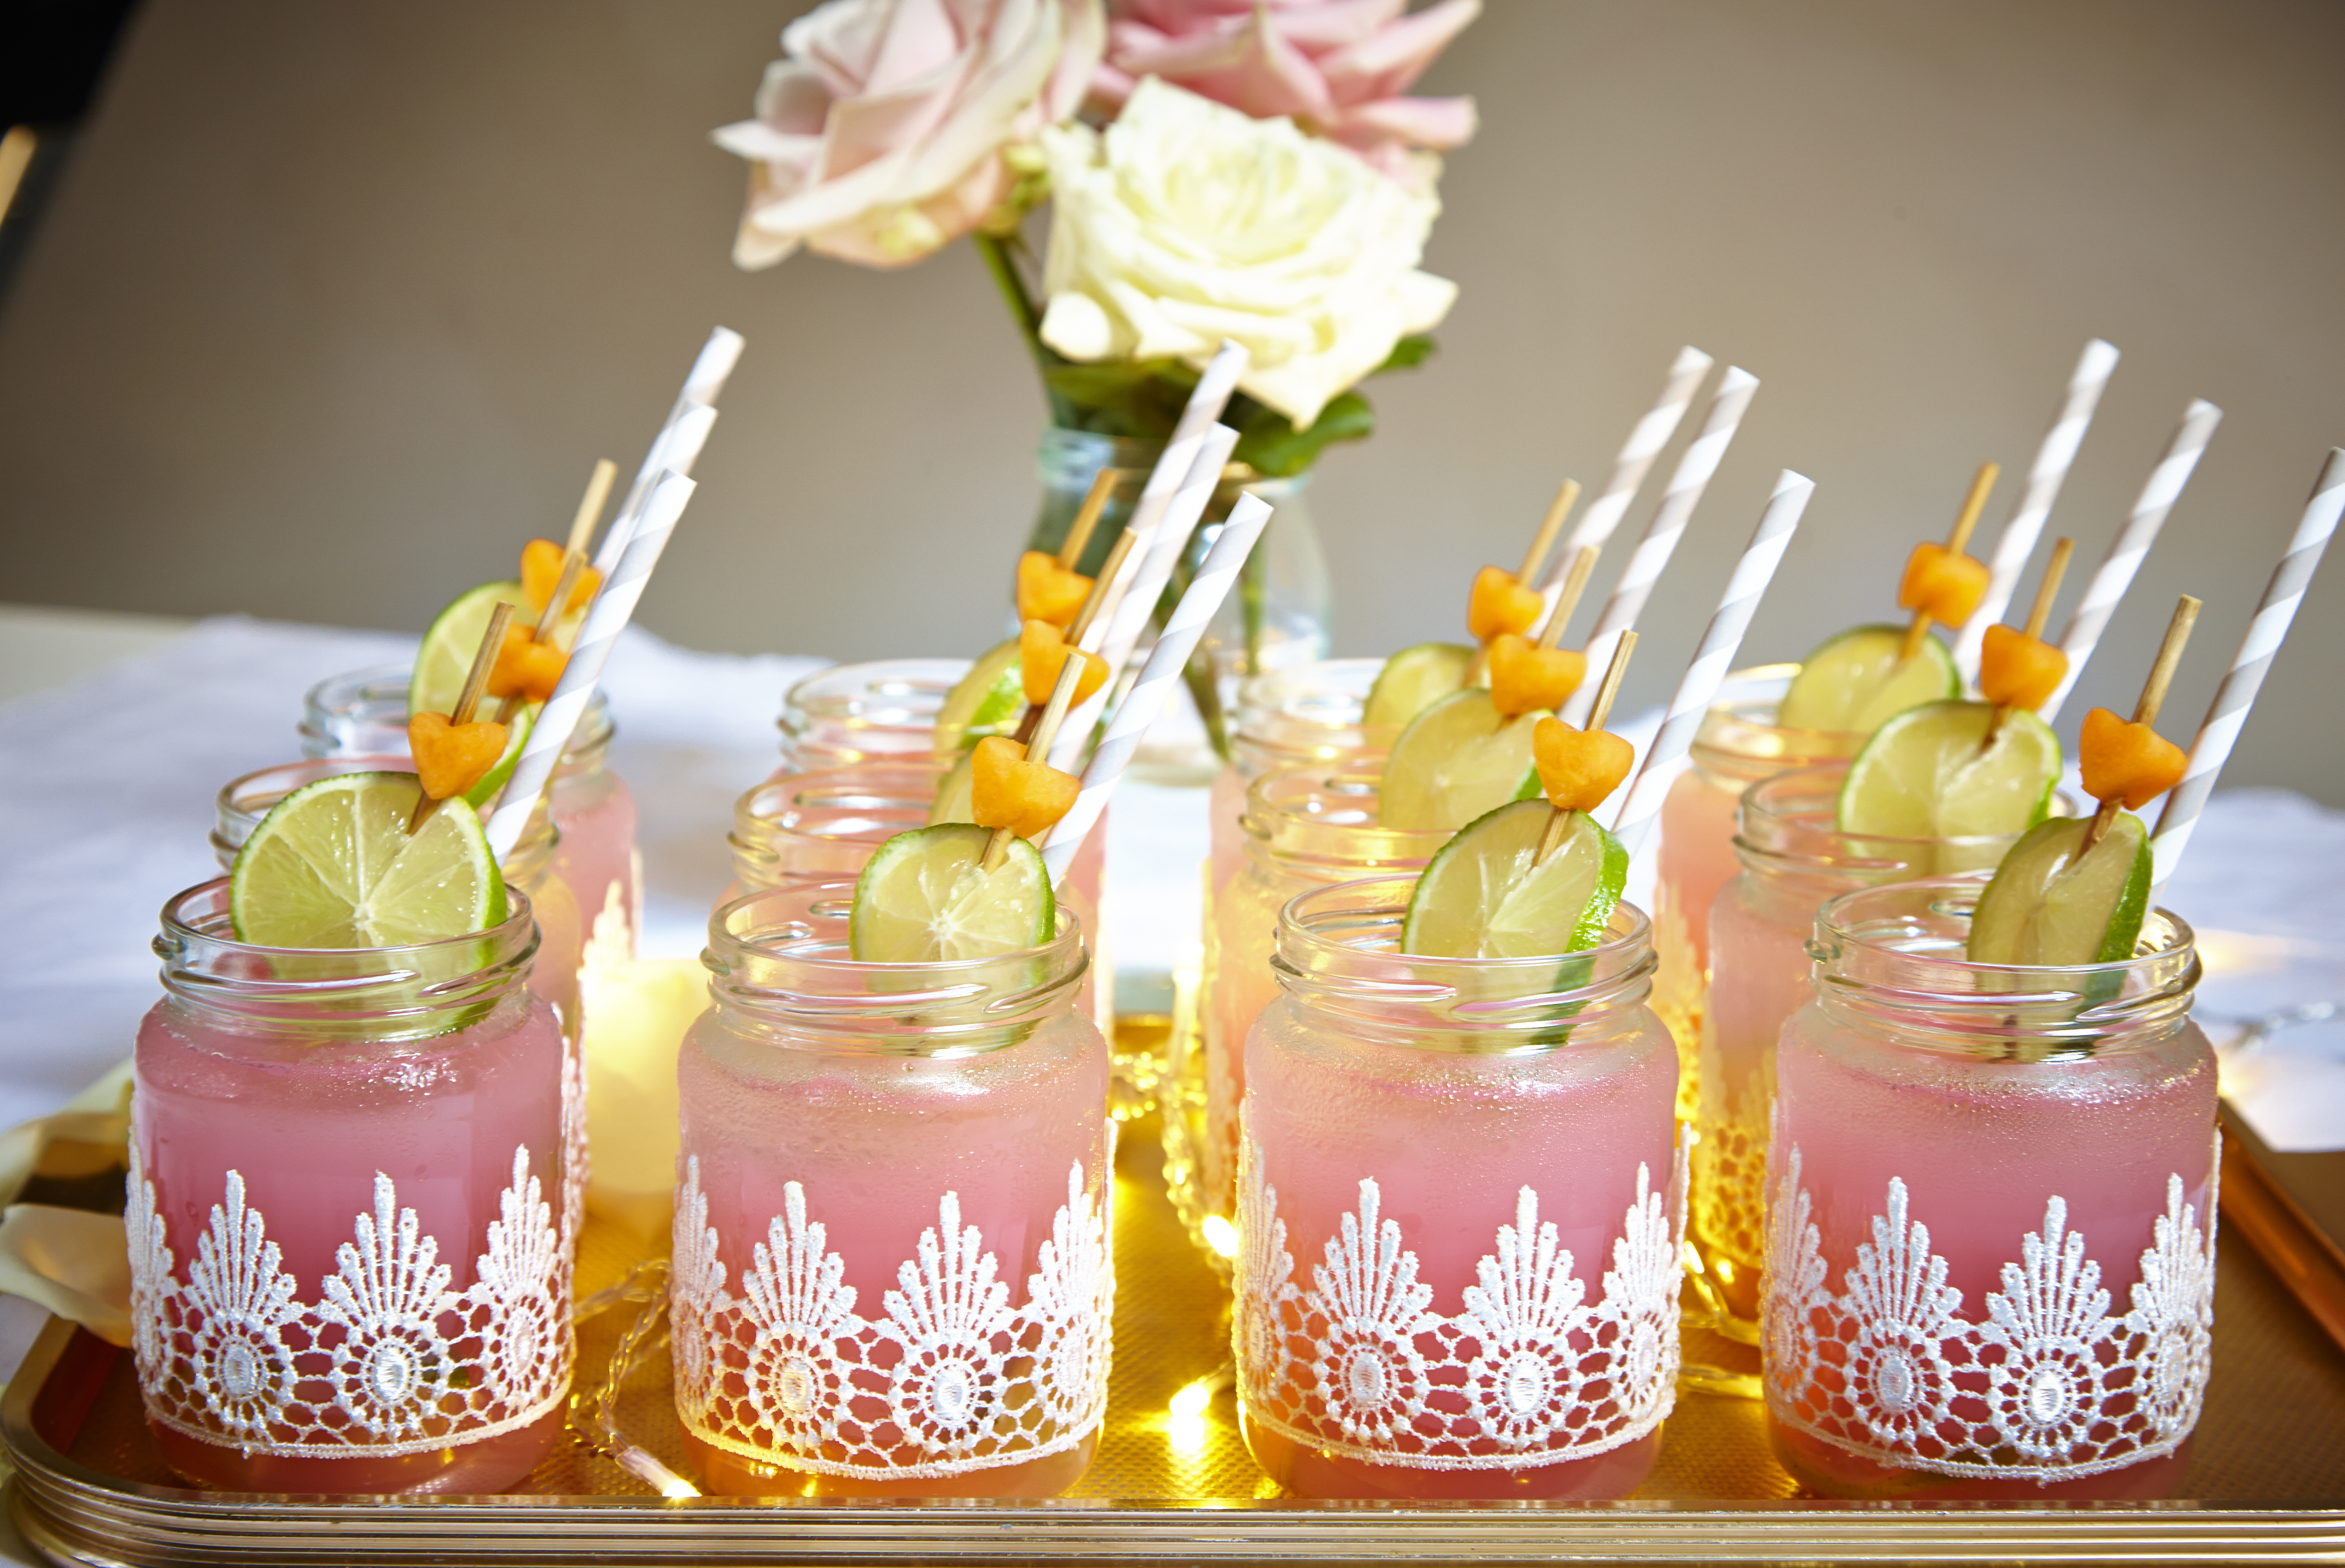 recreate the look lace jars for wedding drinks friends